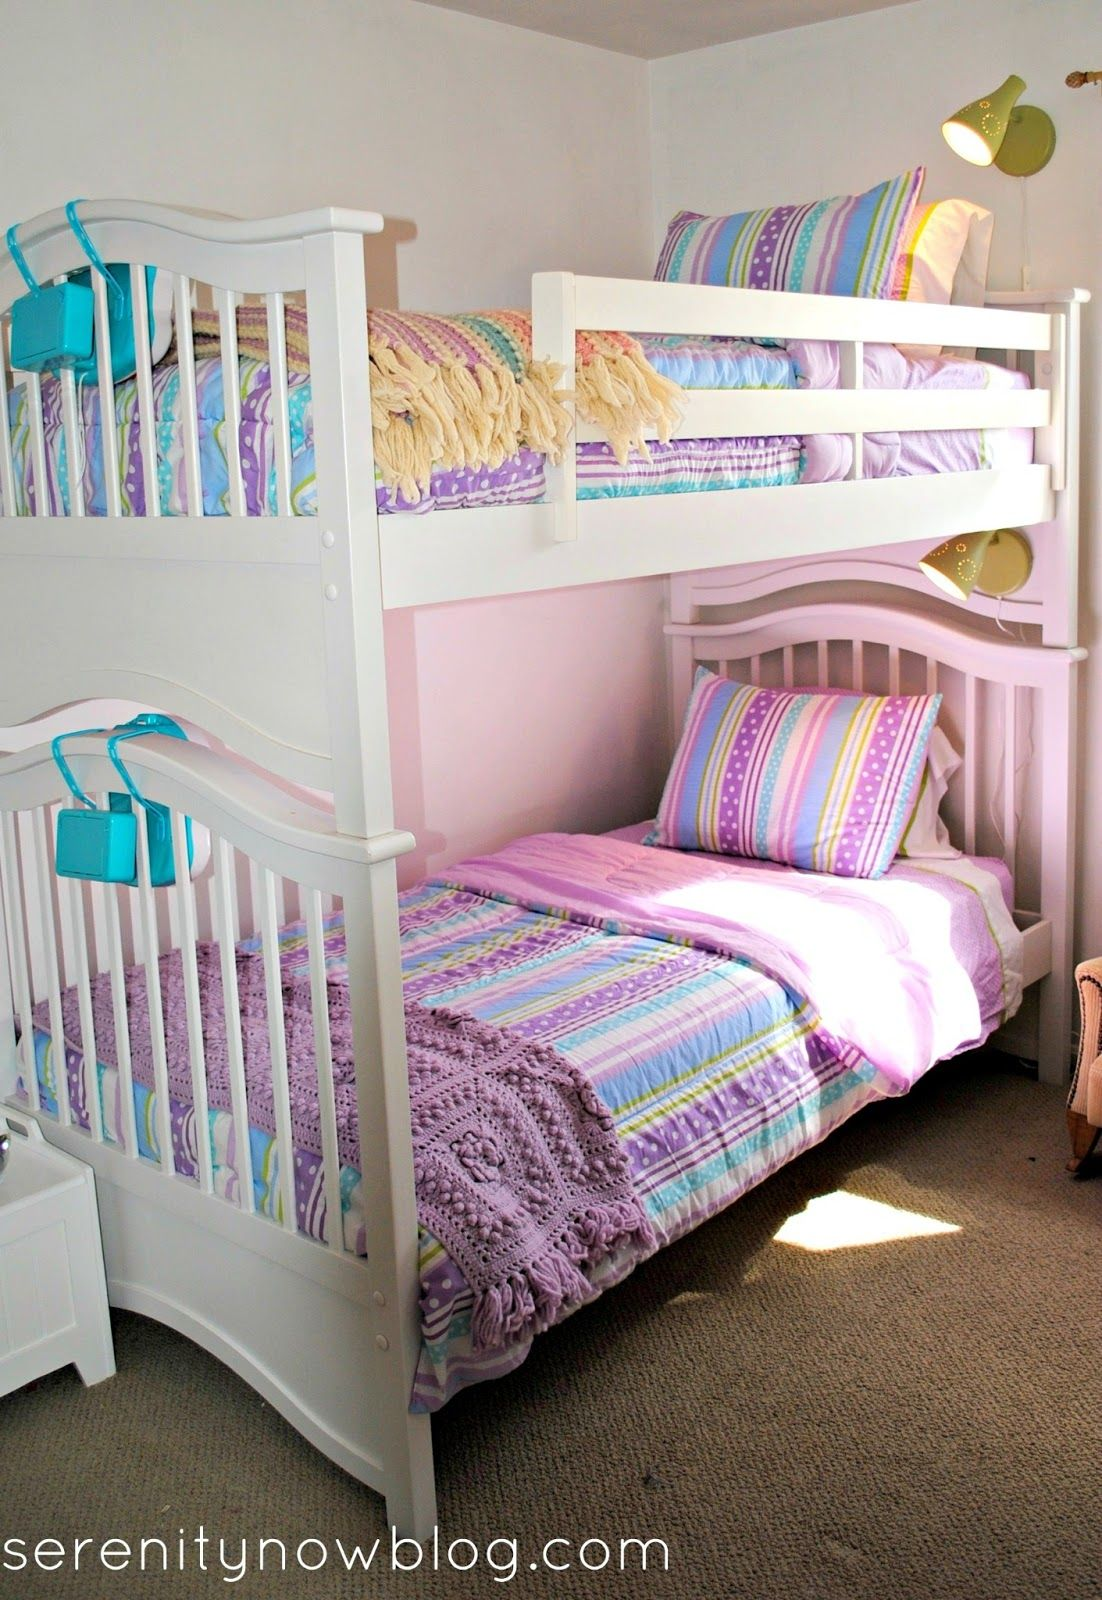 Girls Bunk Beds Add Ikea Lamps To Girls Bunk Beds From Serenity